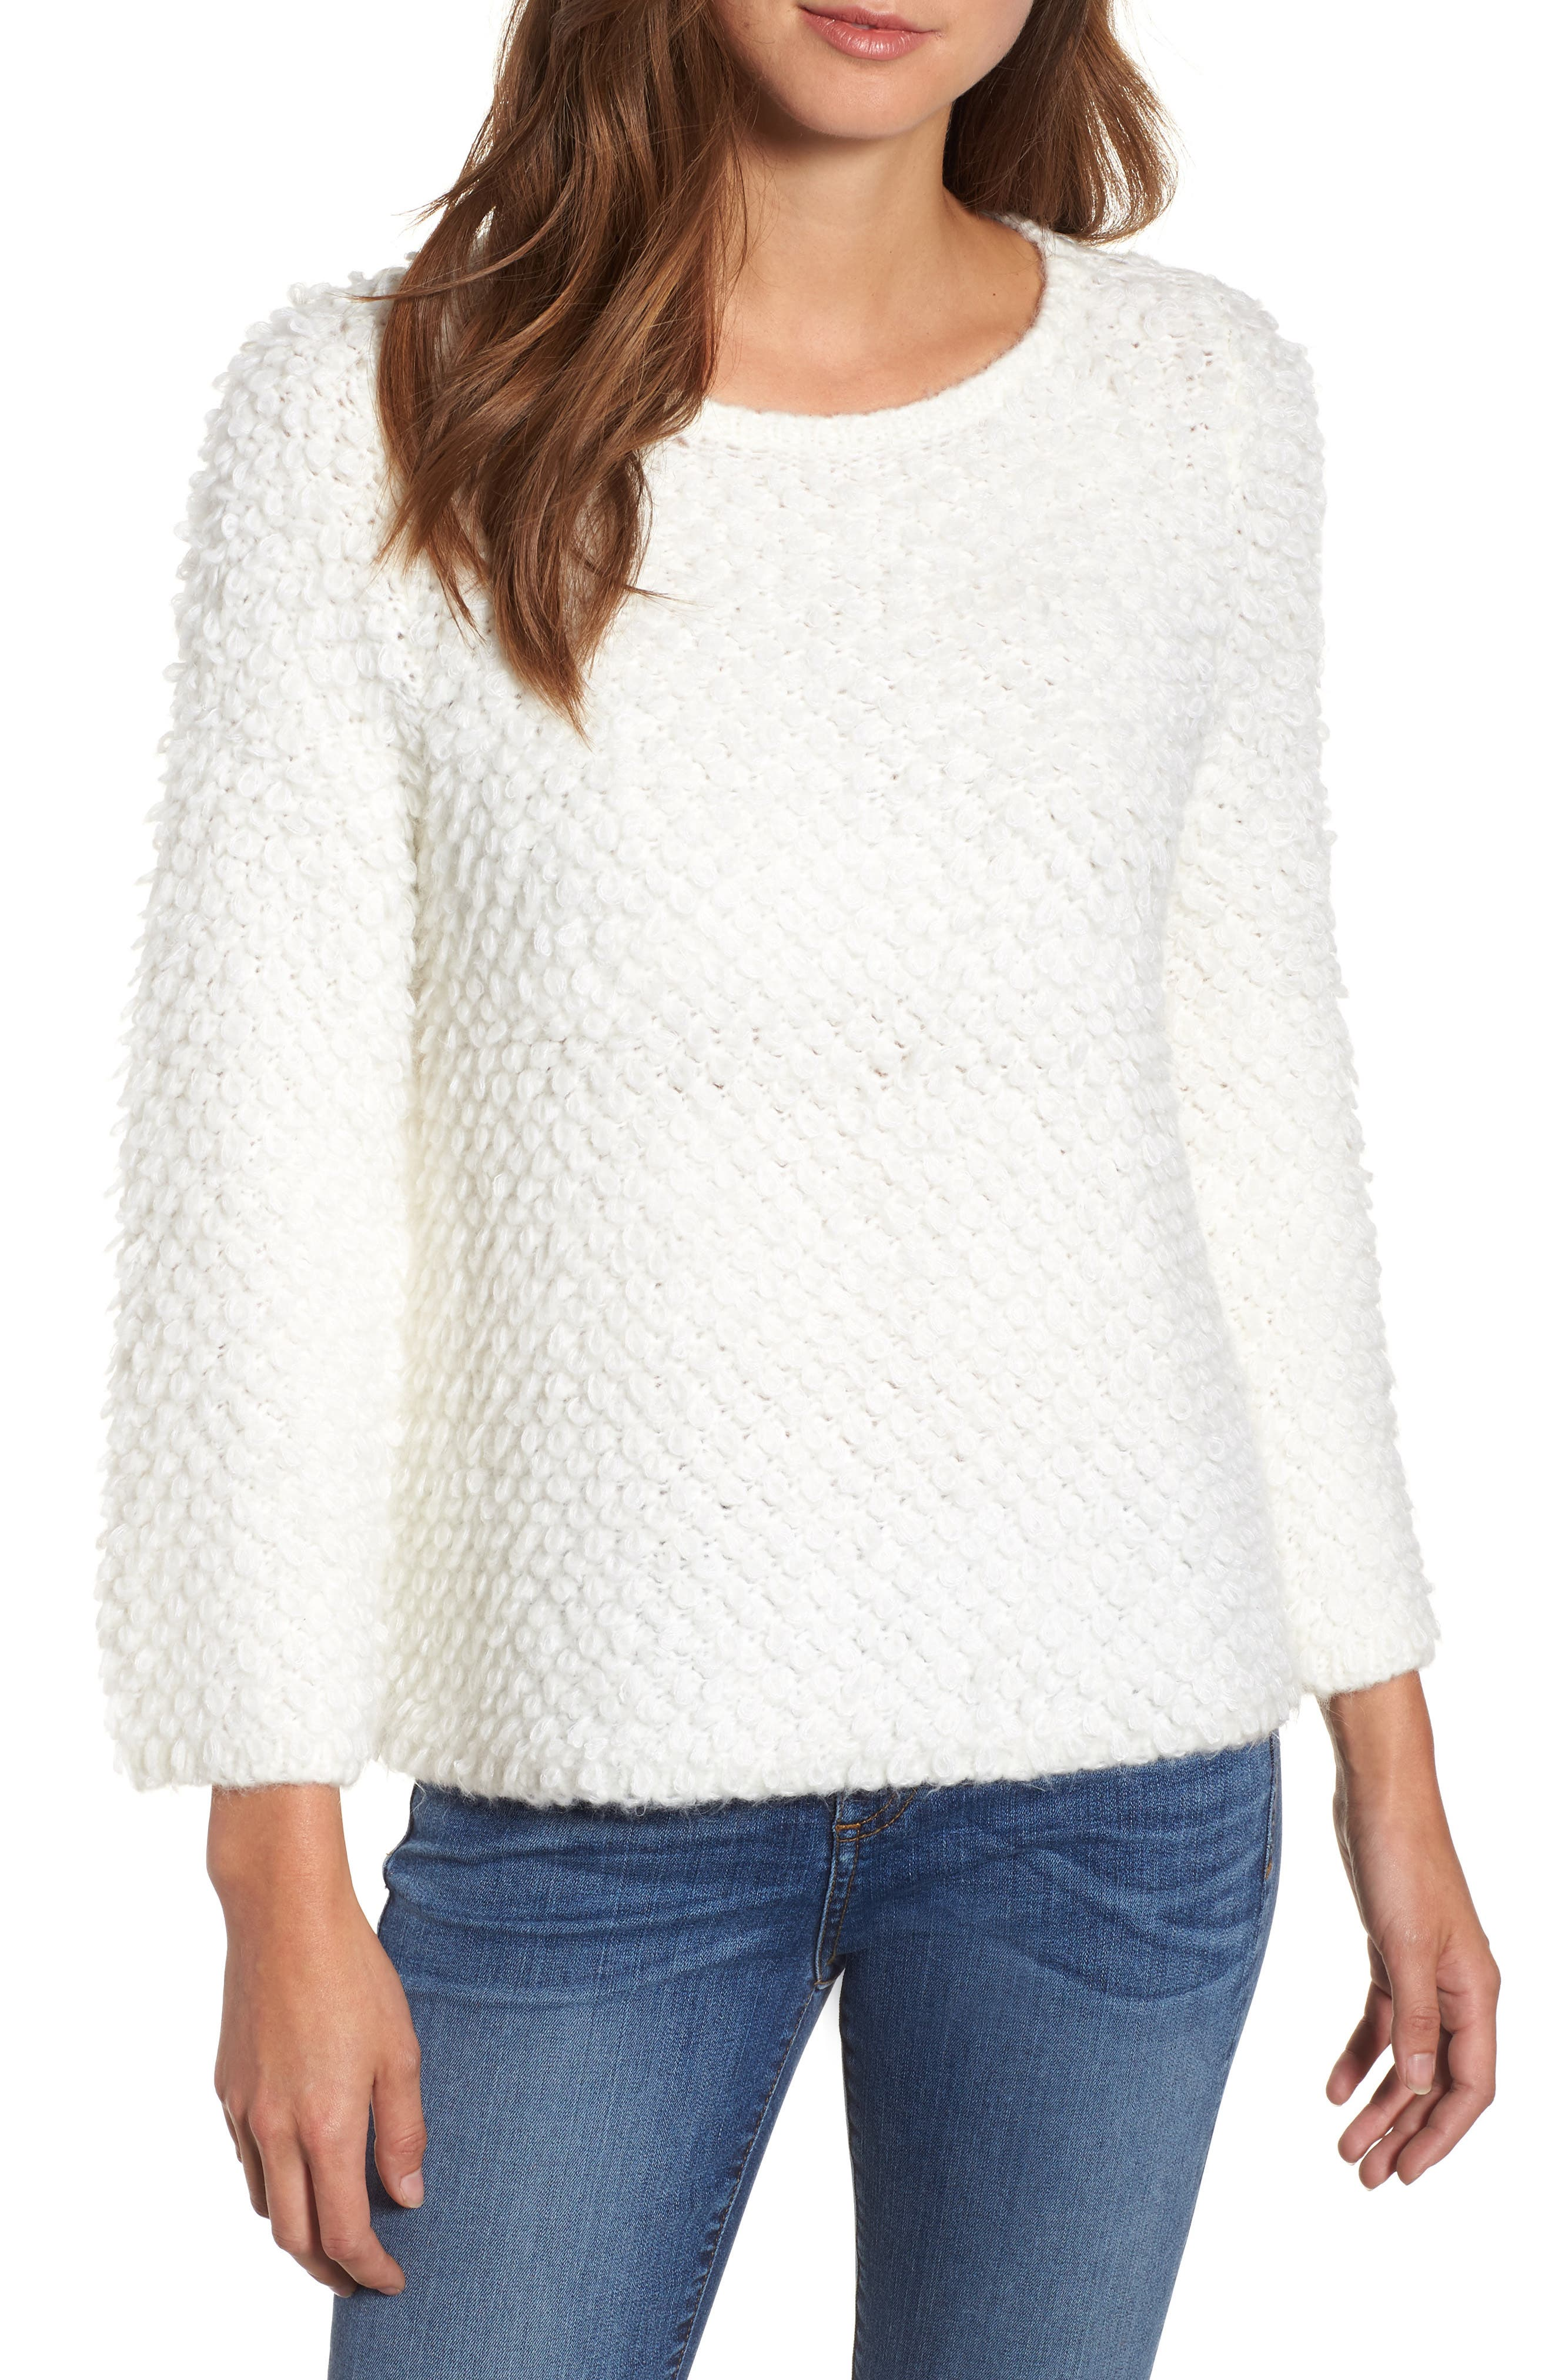 Loop Stitch Crewneck Sweater,                             Main thumbnail 1, color,                             901